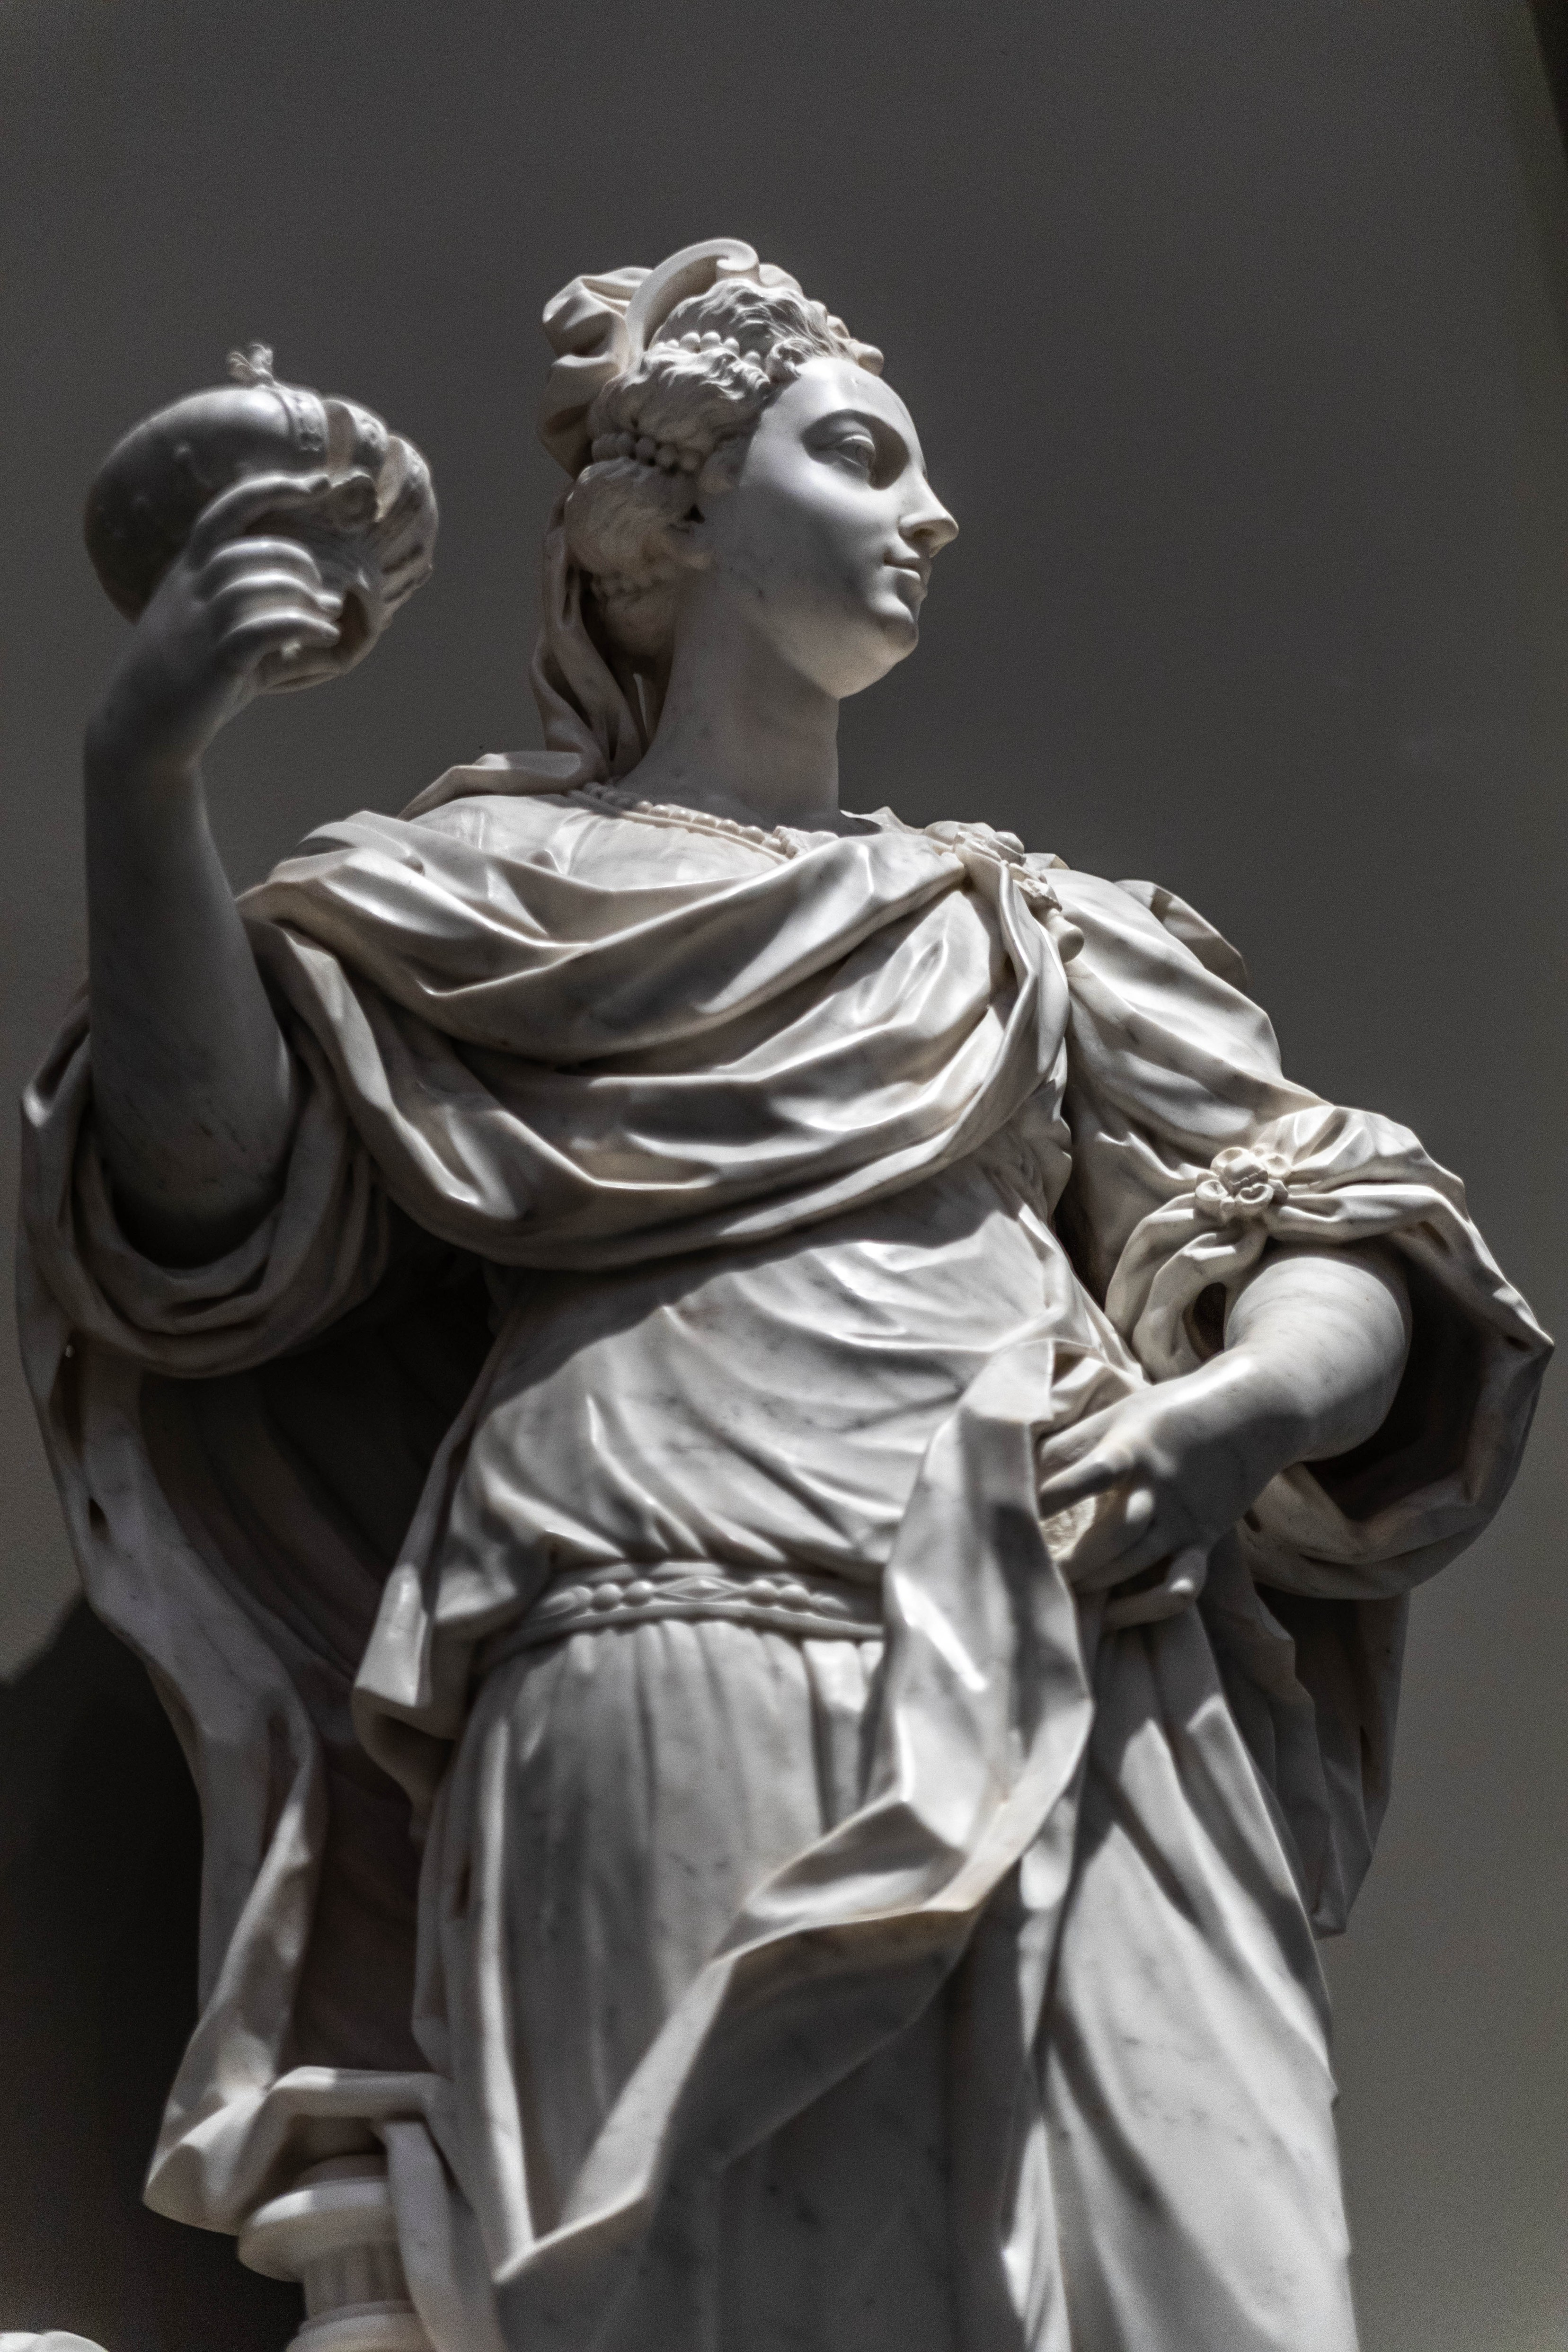 Sculpture of a Woman at LACMA Los Angeles County Museum of Art